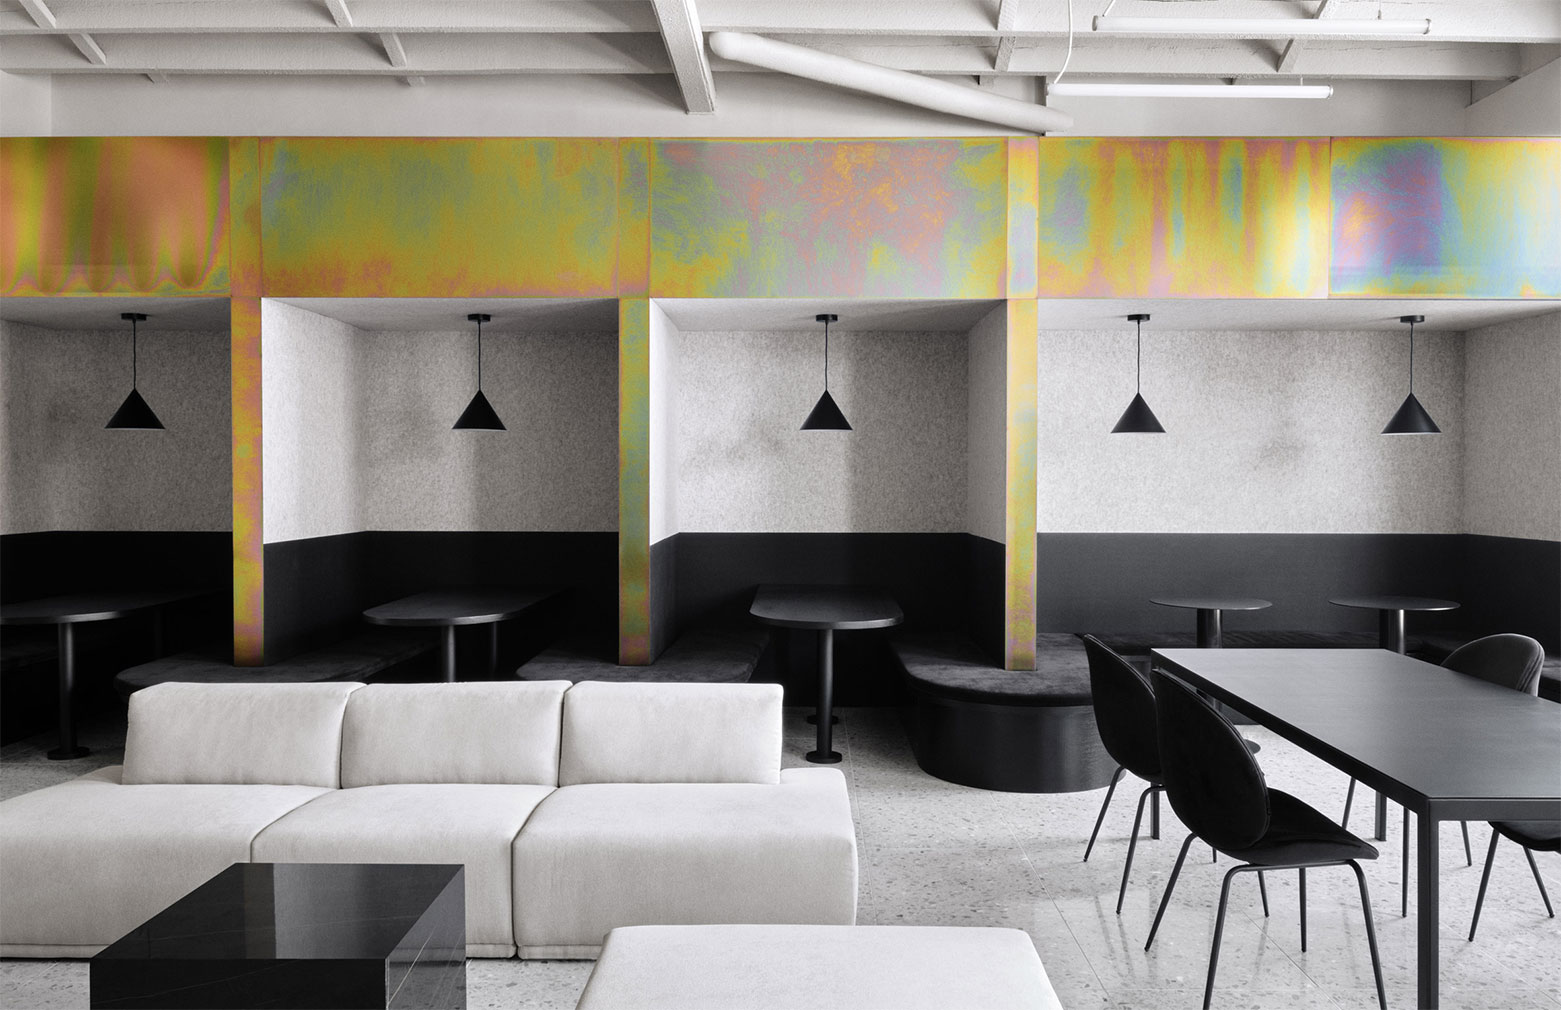 Zinc metal cladding across the upper parts of the space casts an iridescent spectrum